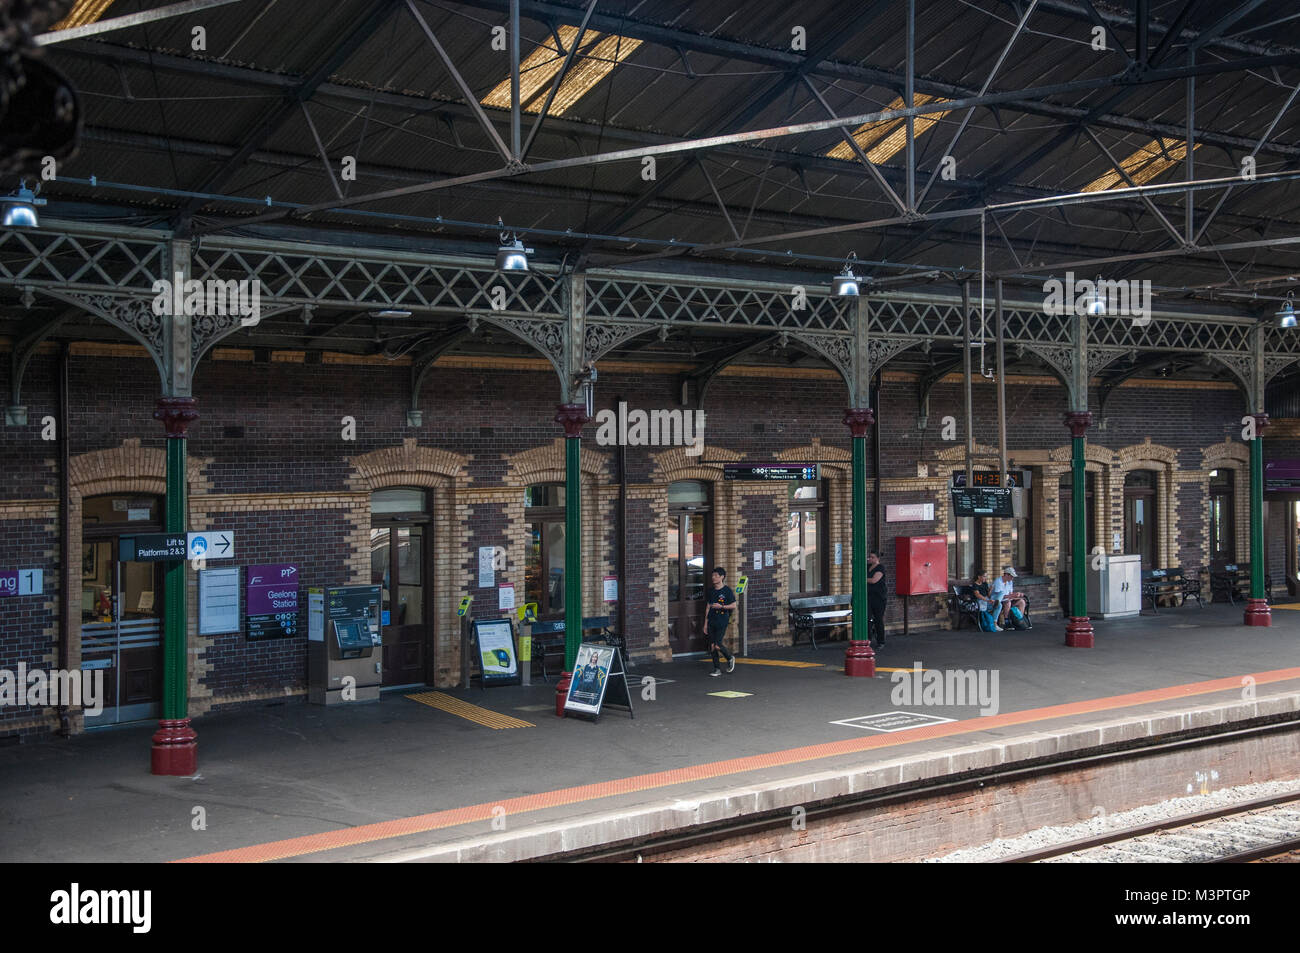 Geelong Railway Station. Geelong is a port city located on Corio Bay, in Victoria, Australia, 75 km SW of the state - Stock Image